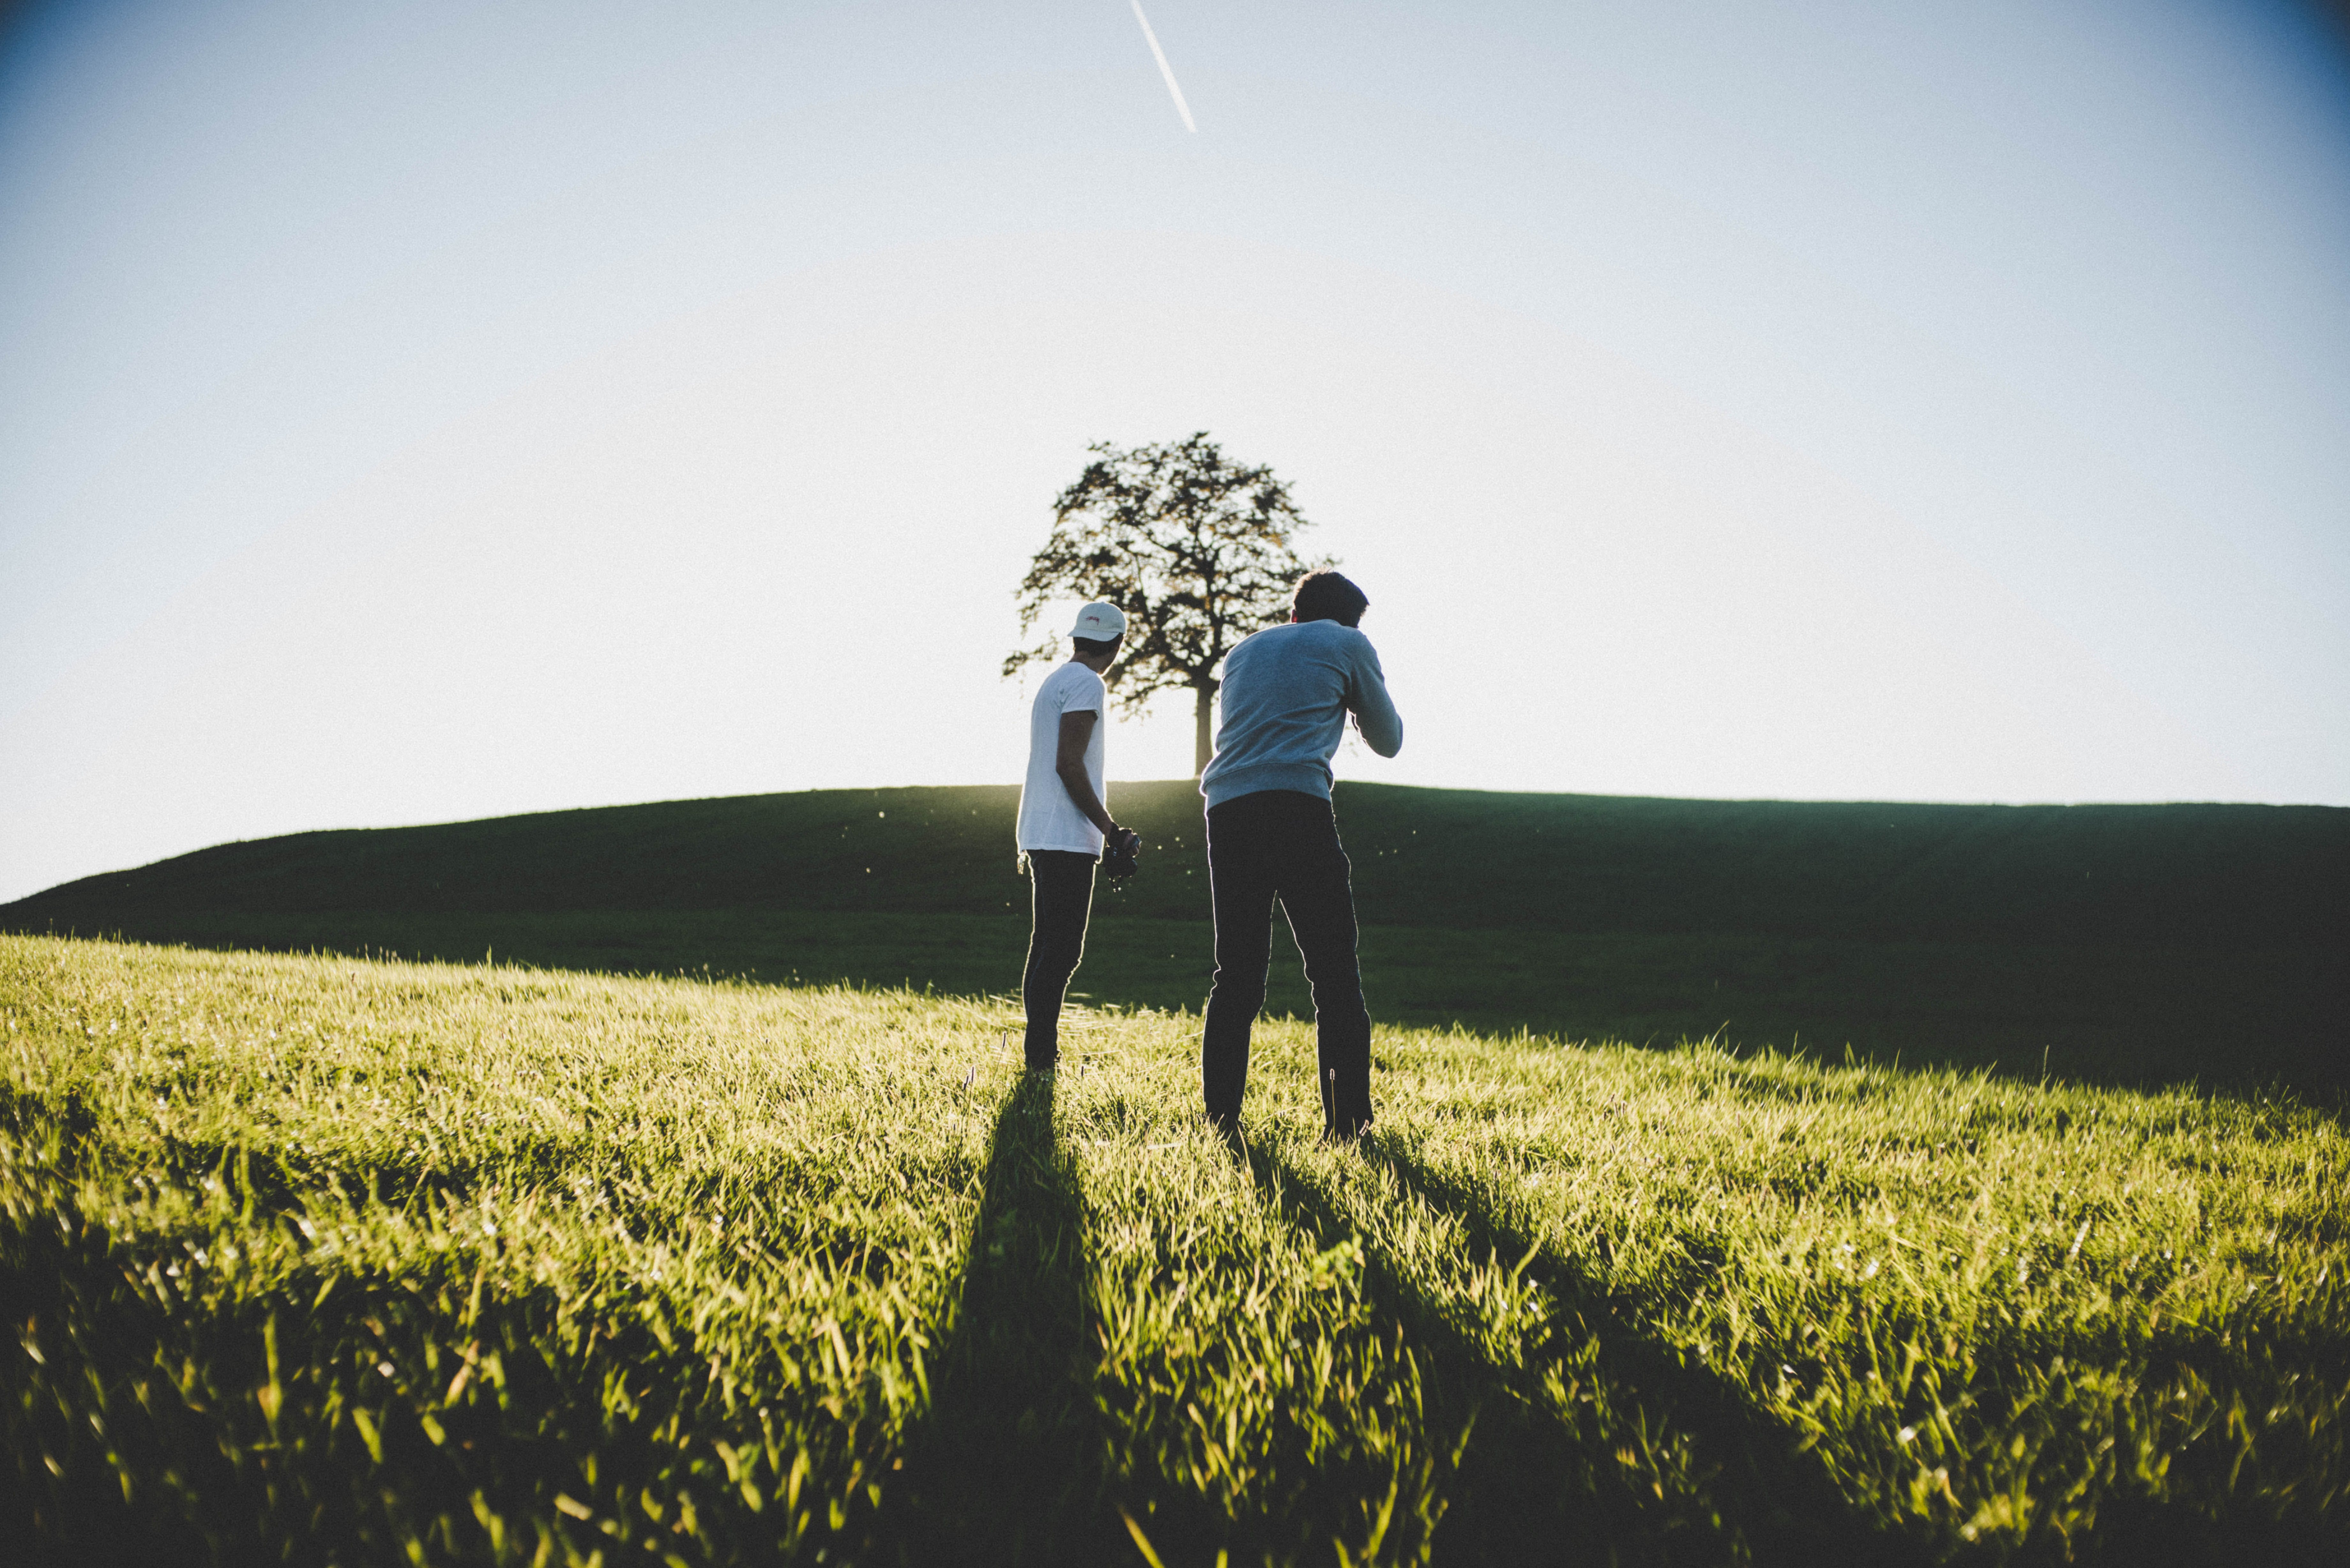 Two Men Standing on Green Grass